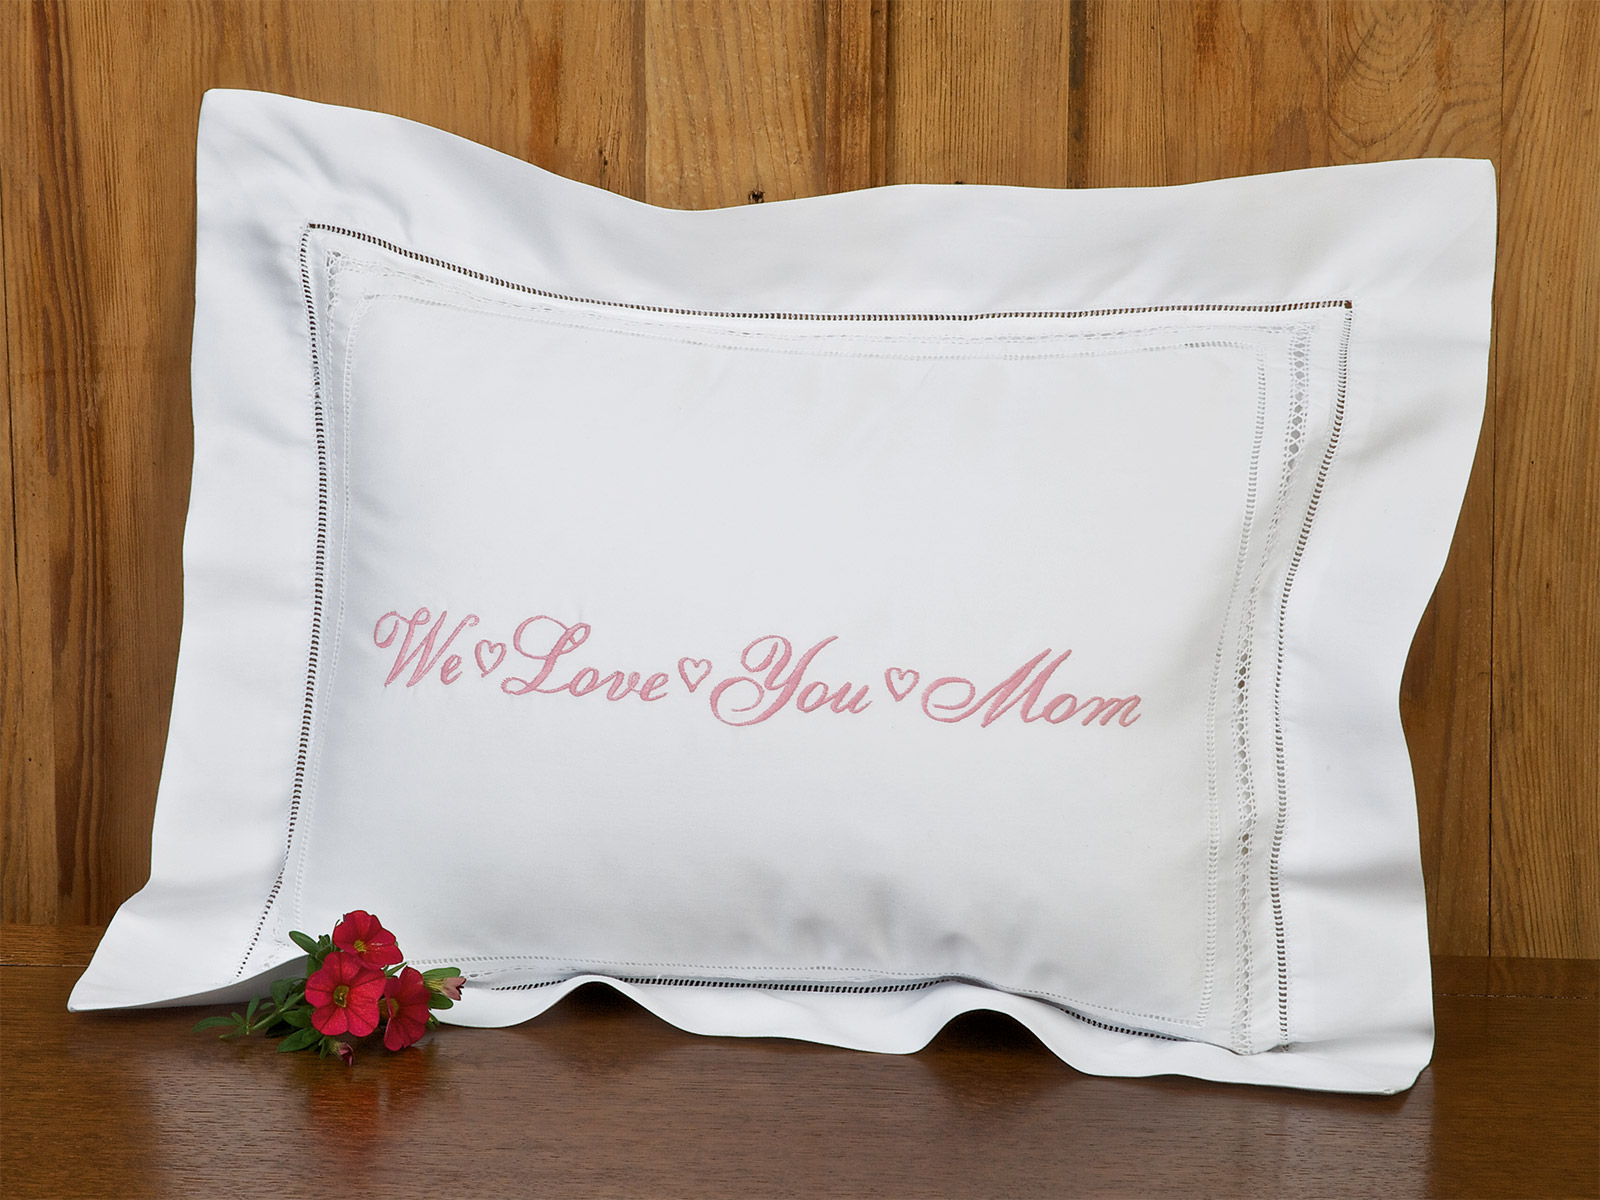 LoveUMom_Pillow_1107.jpg